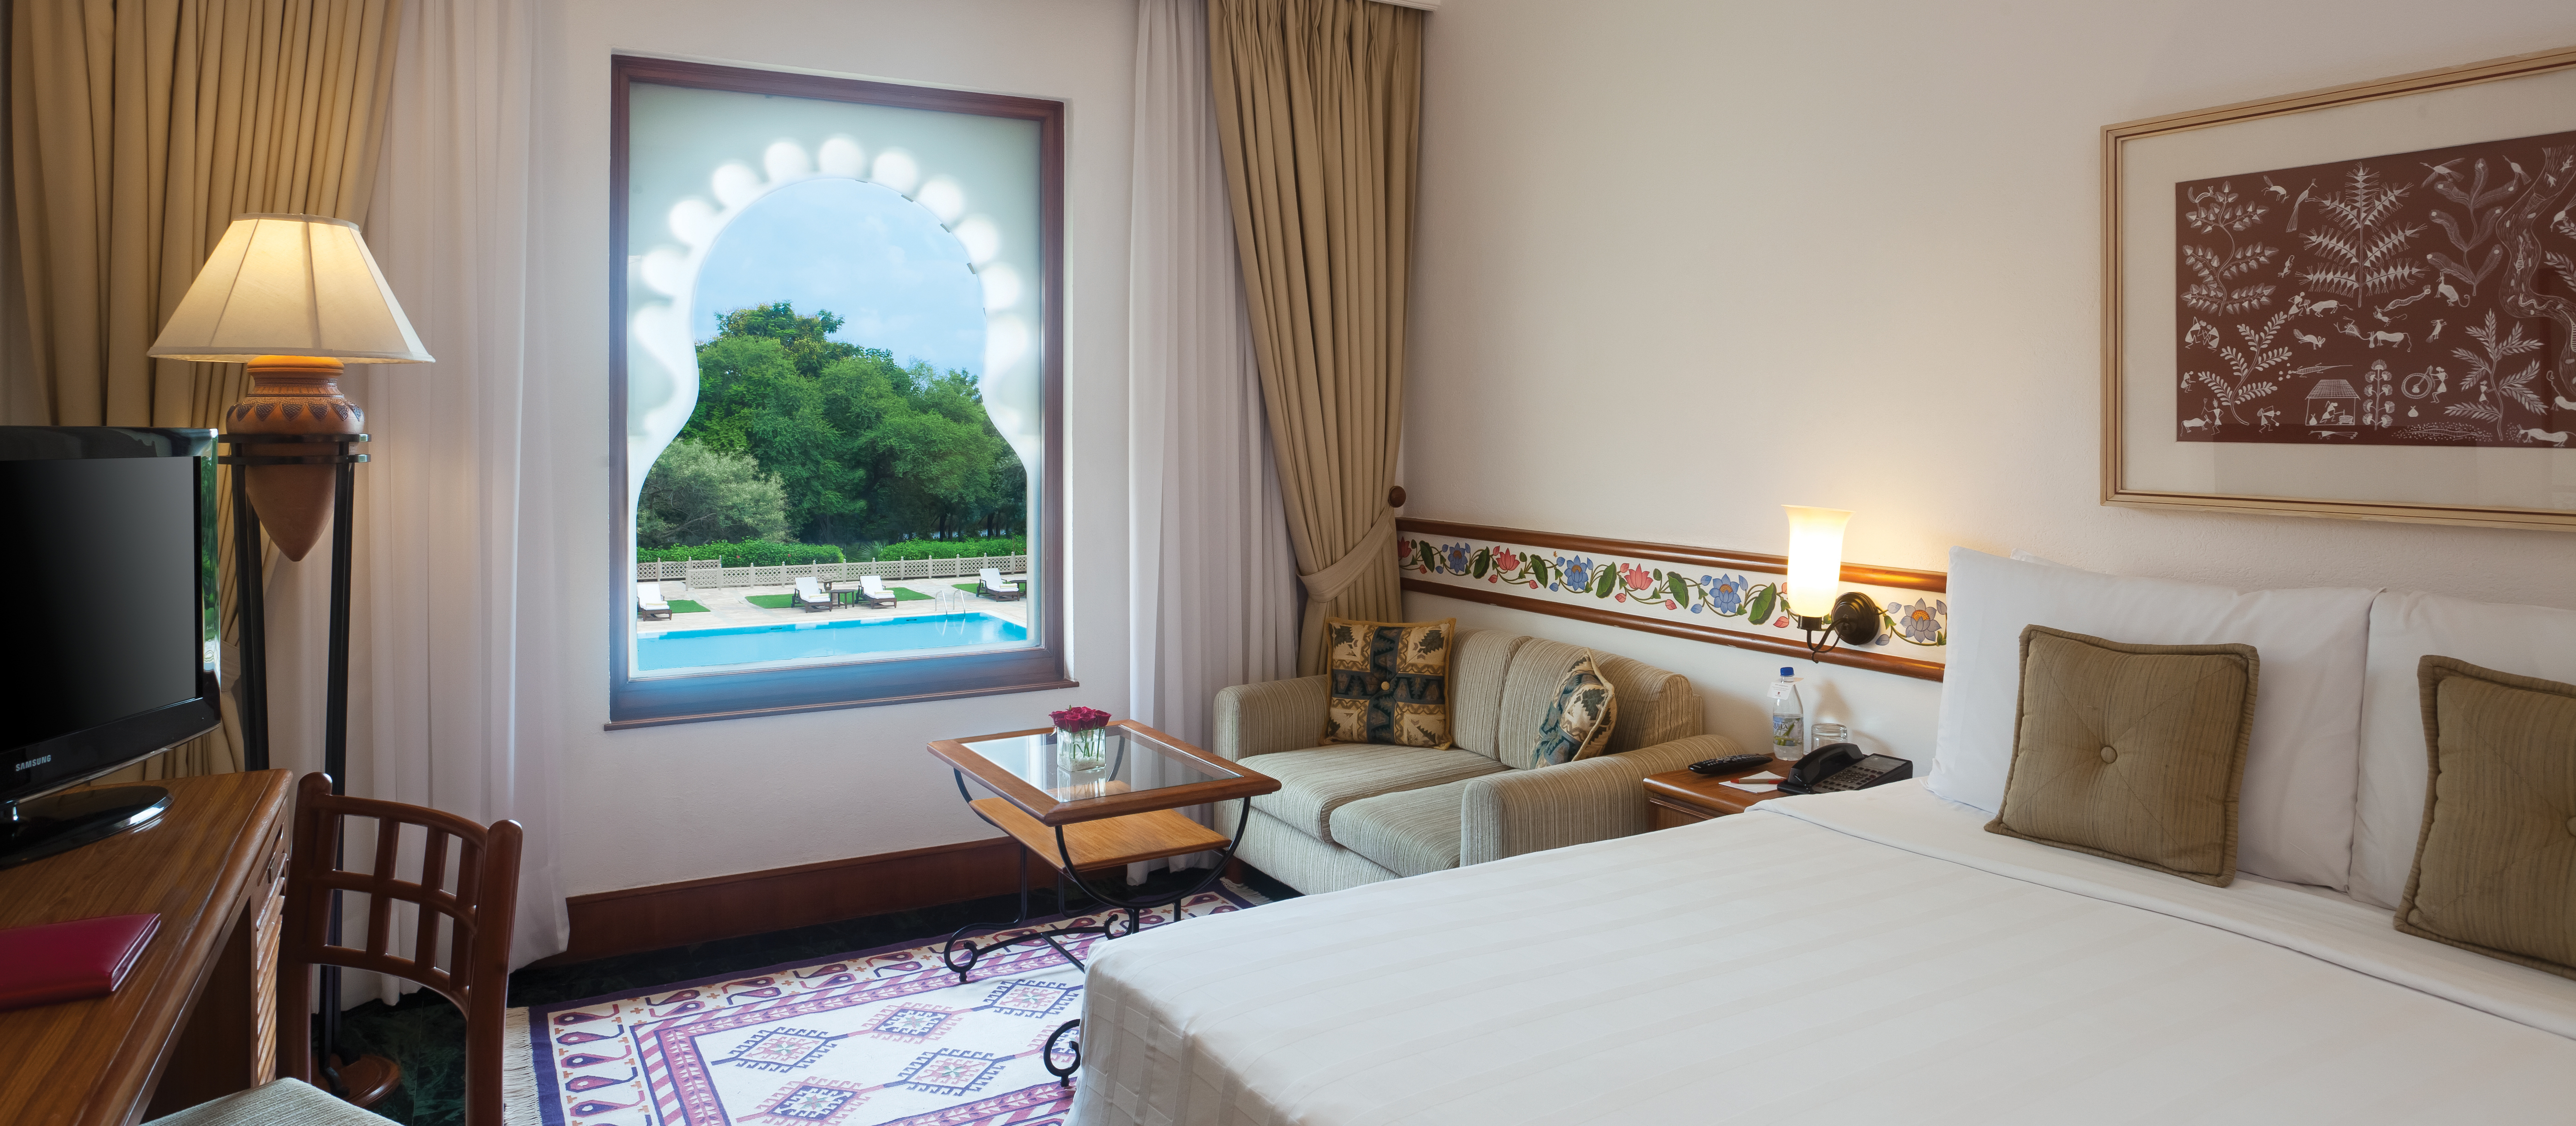 trident-hotel-udaipur-deluxe-room